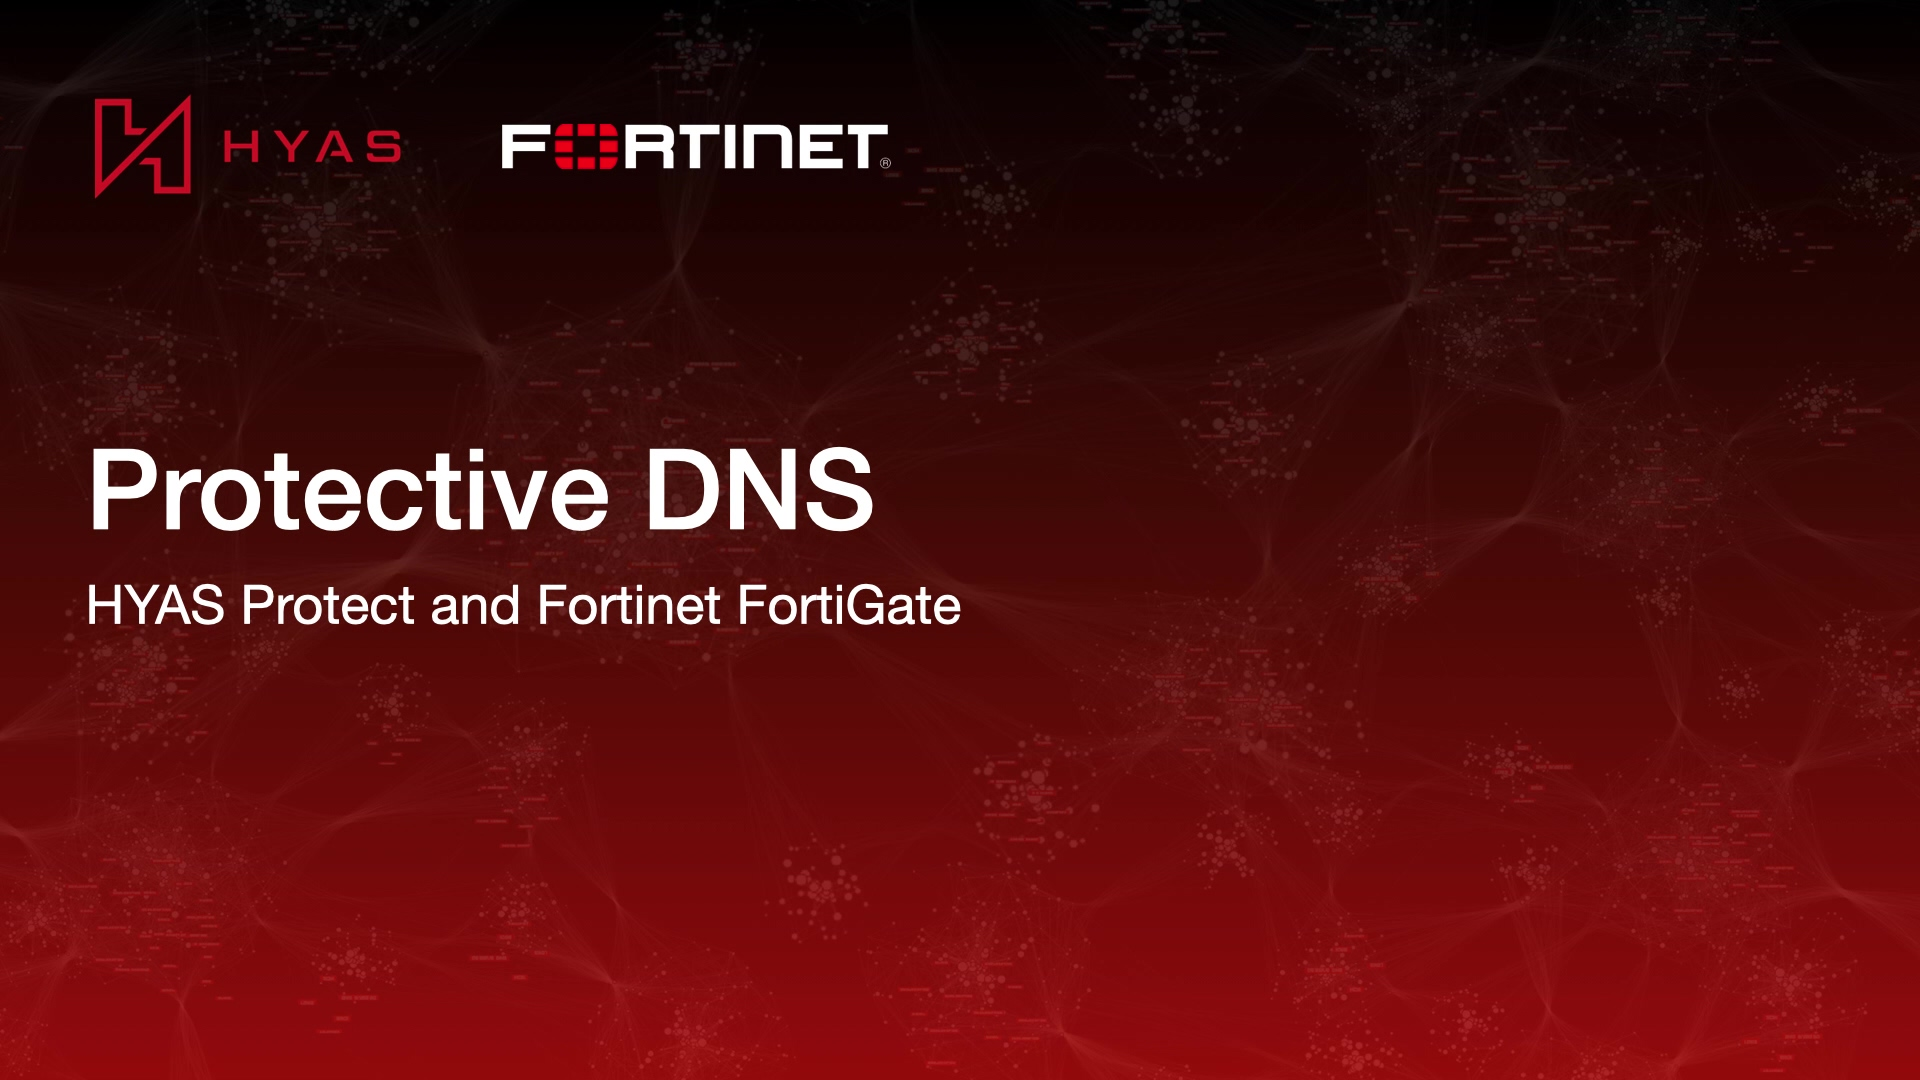 HYAS Protect Fortinet FortiGate